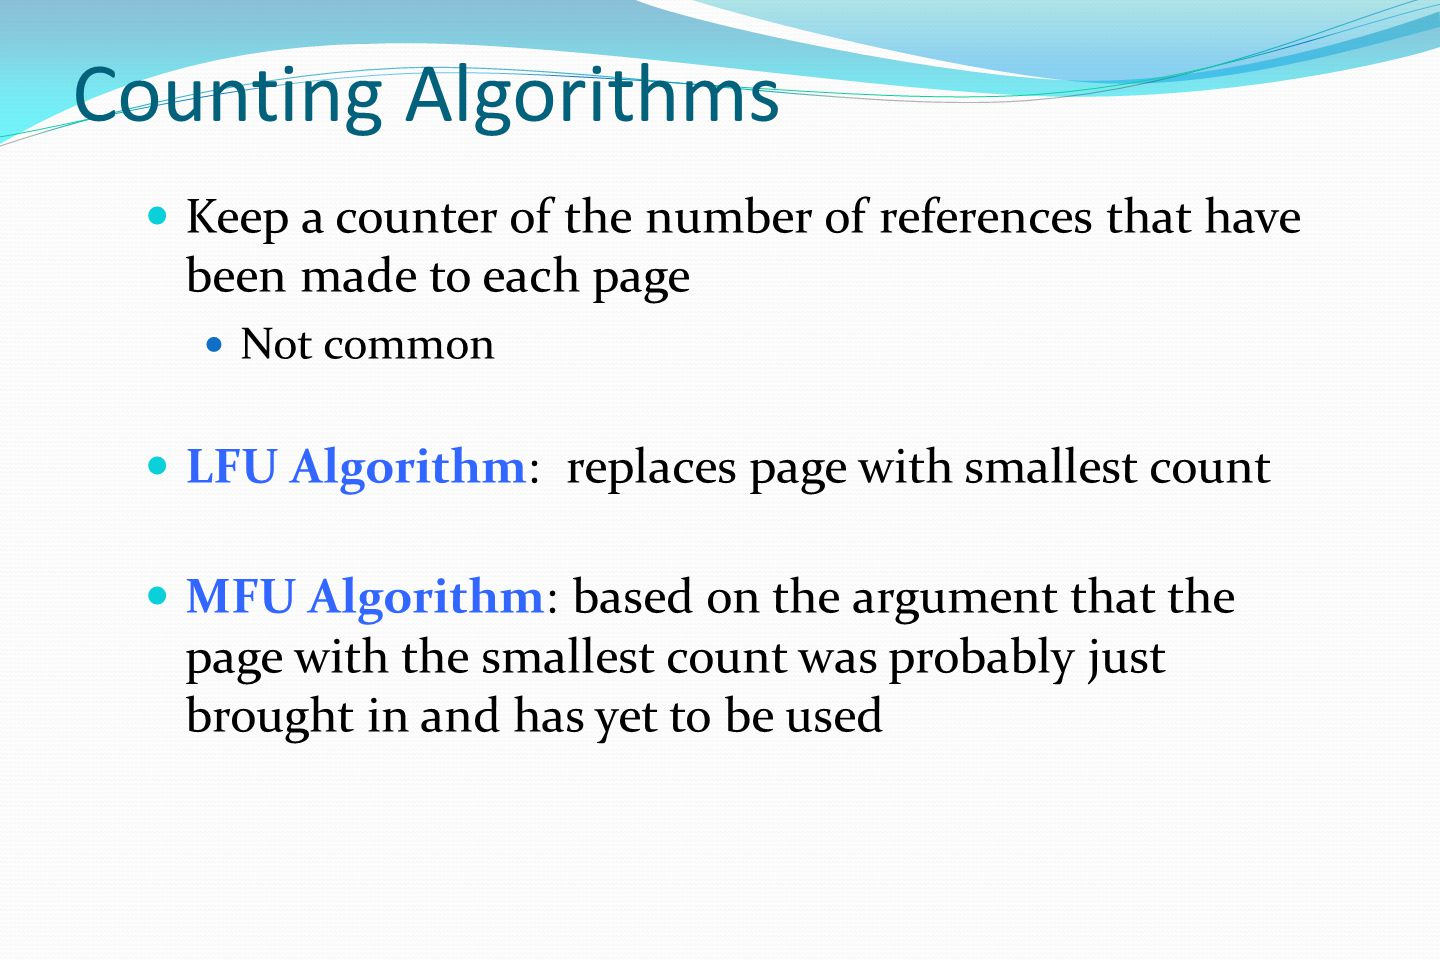 Counting Algorithms Keep a counter of the number of references that have been made to each page Not common LFU Algorithm: replaces page with smallest count MFU Algorithm: based on the argument that the page with the smallest count was probably just brought in and has yet to be used